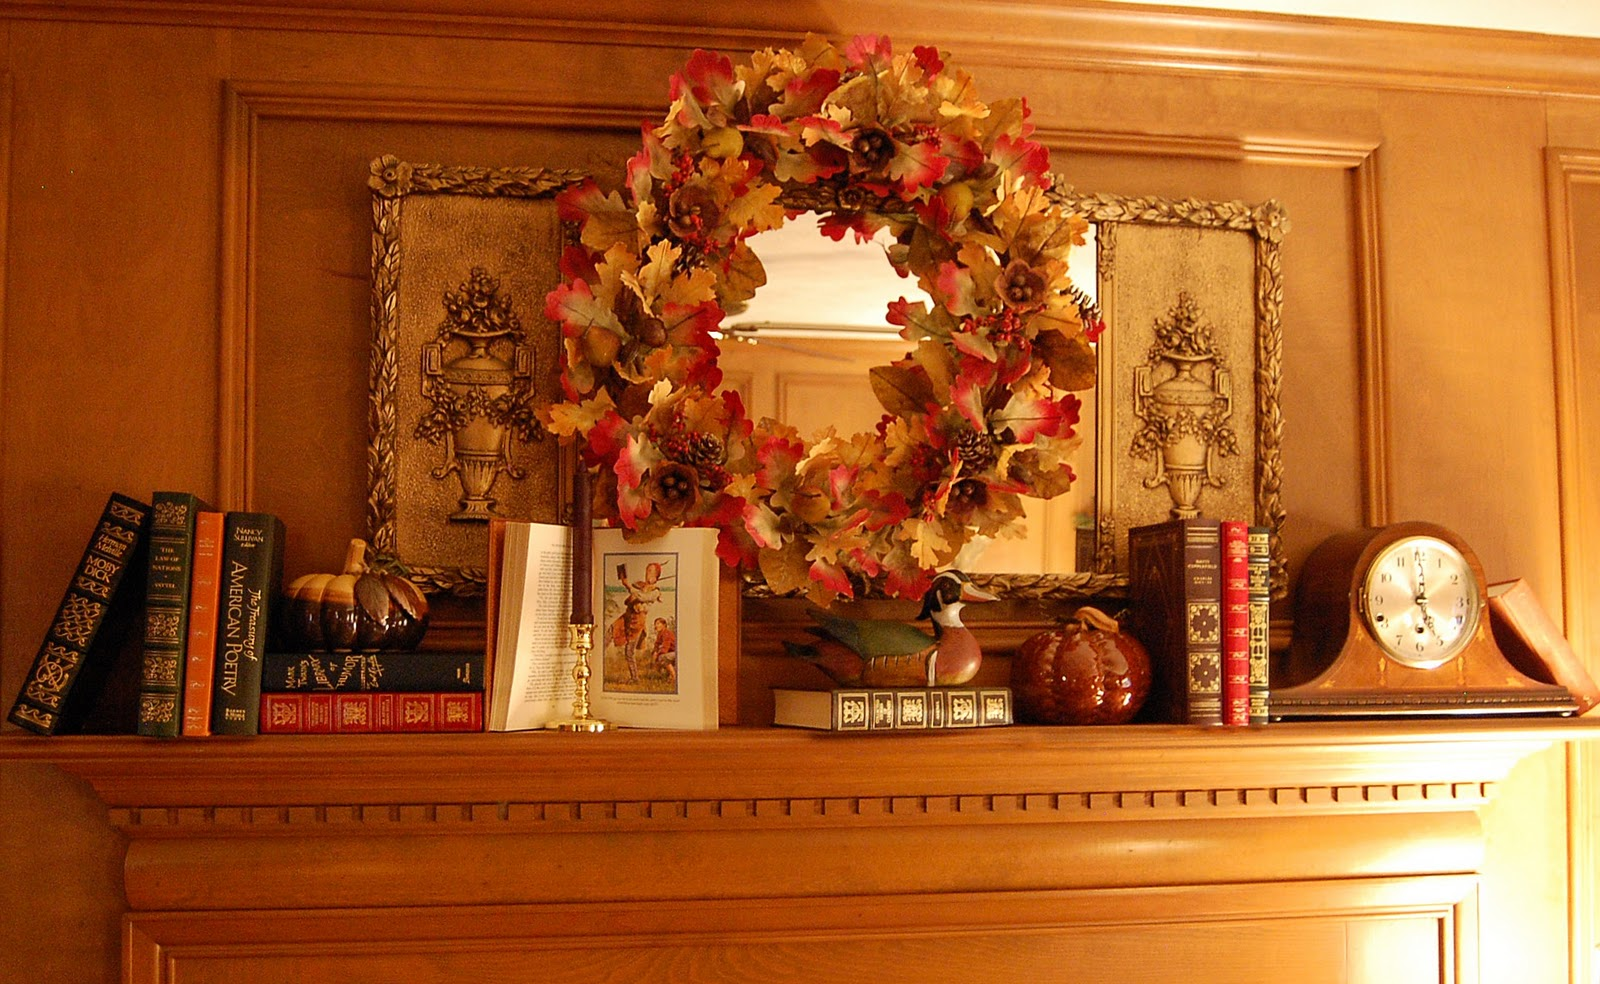 Decorate a Fireplace Mantel for Fall or Autumn with Books, Pumpkins ...